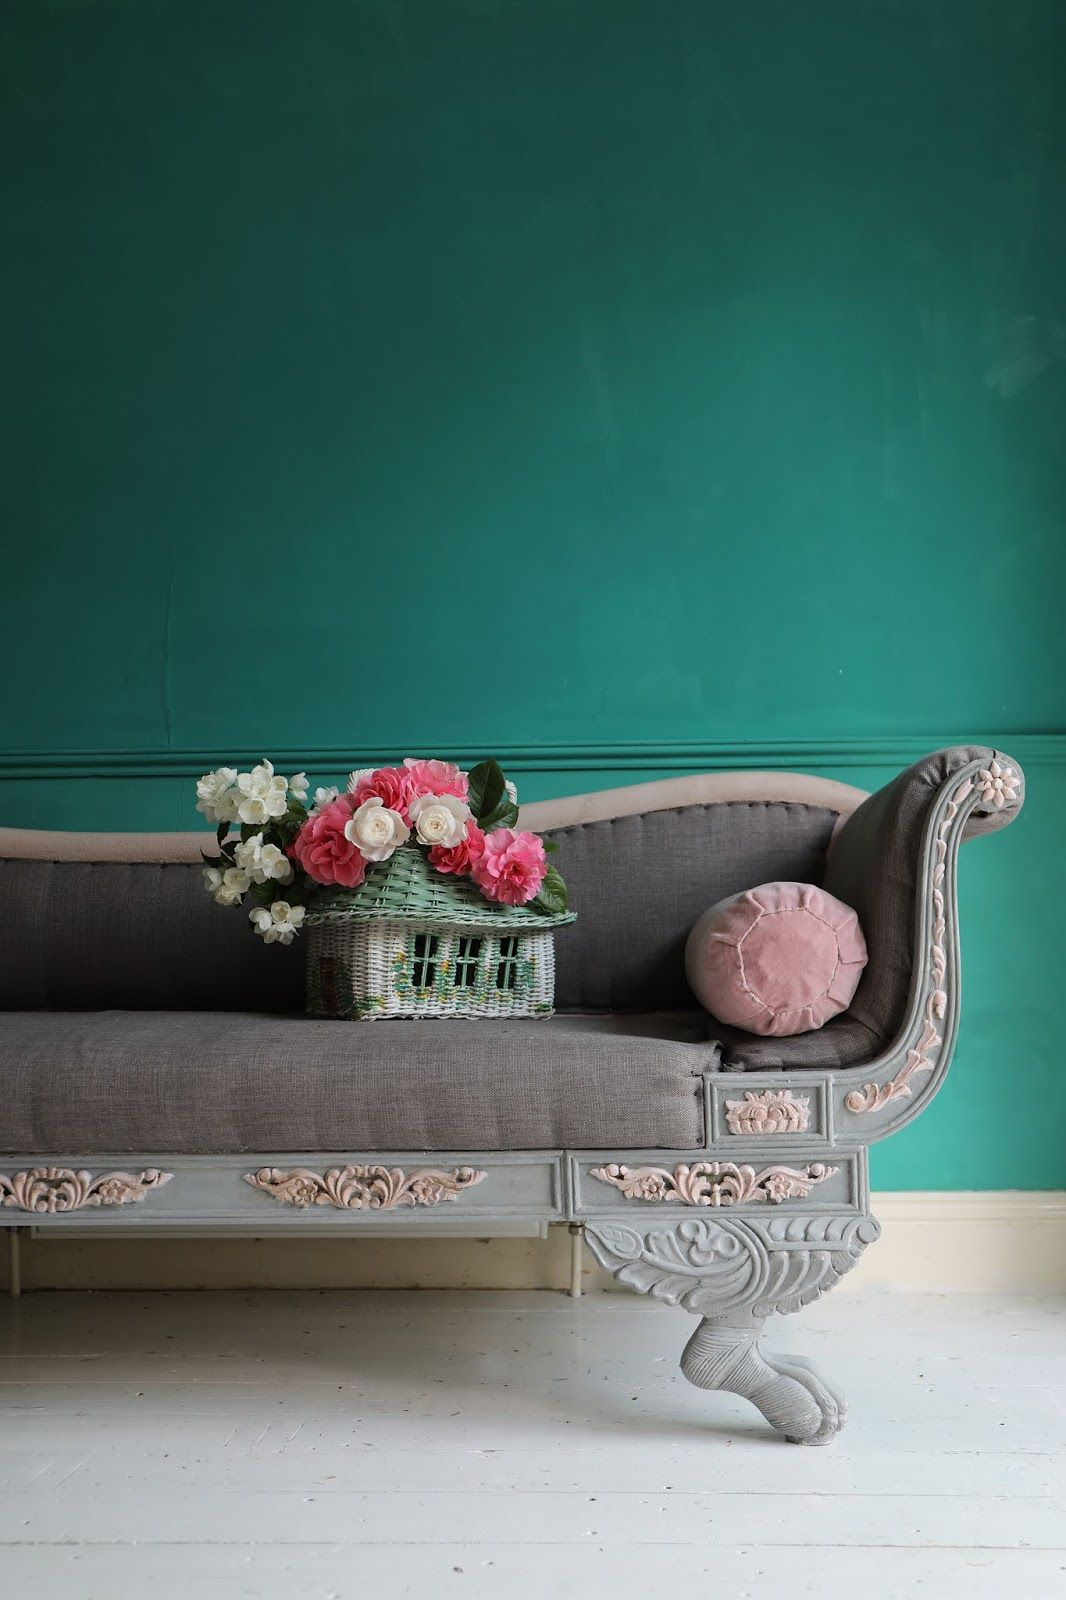 Longue And Green Jade Wall Vintage Chaise With Linen French F3K1JTl5uc